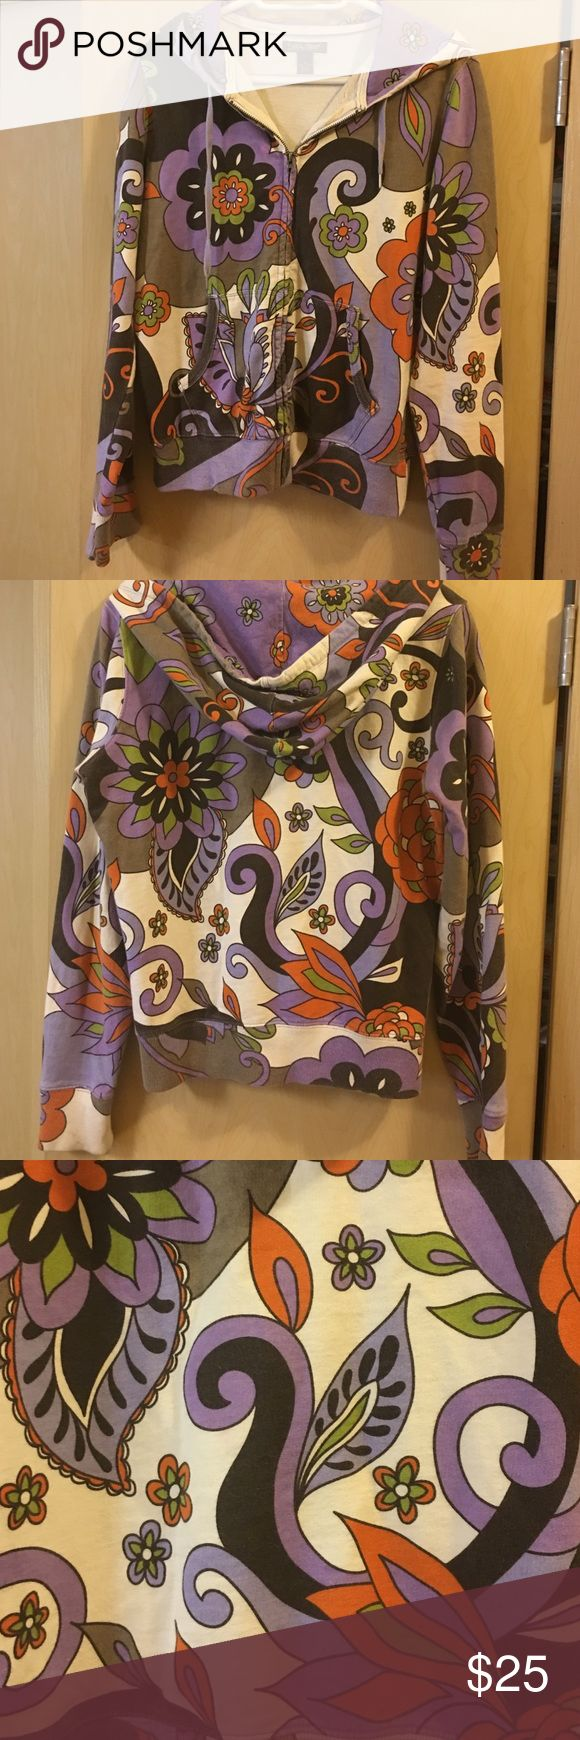 Lucky 🍀 Brand women's hooded sweatshirt Lucky 🍀 Brand women's zip up hooded sweatshirt purple, green , orange, black  and  cream colored Lucky Brand Jackets & Coats